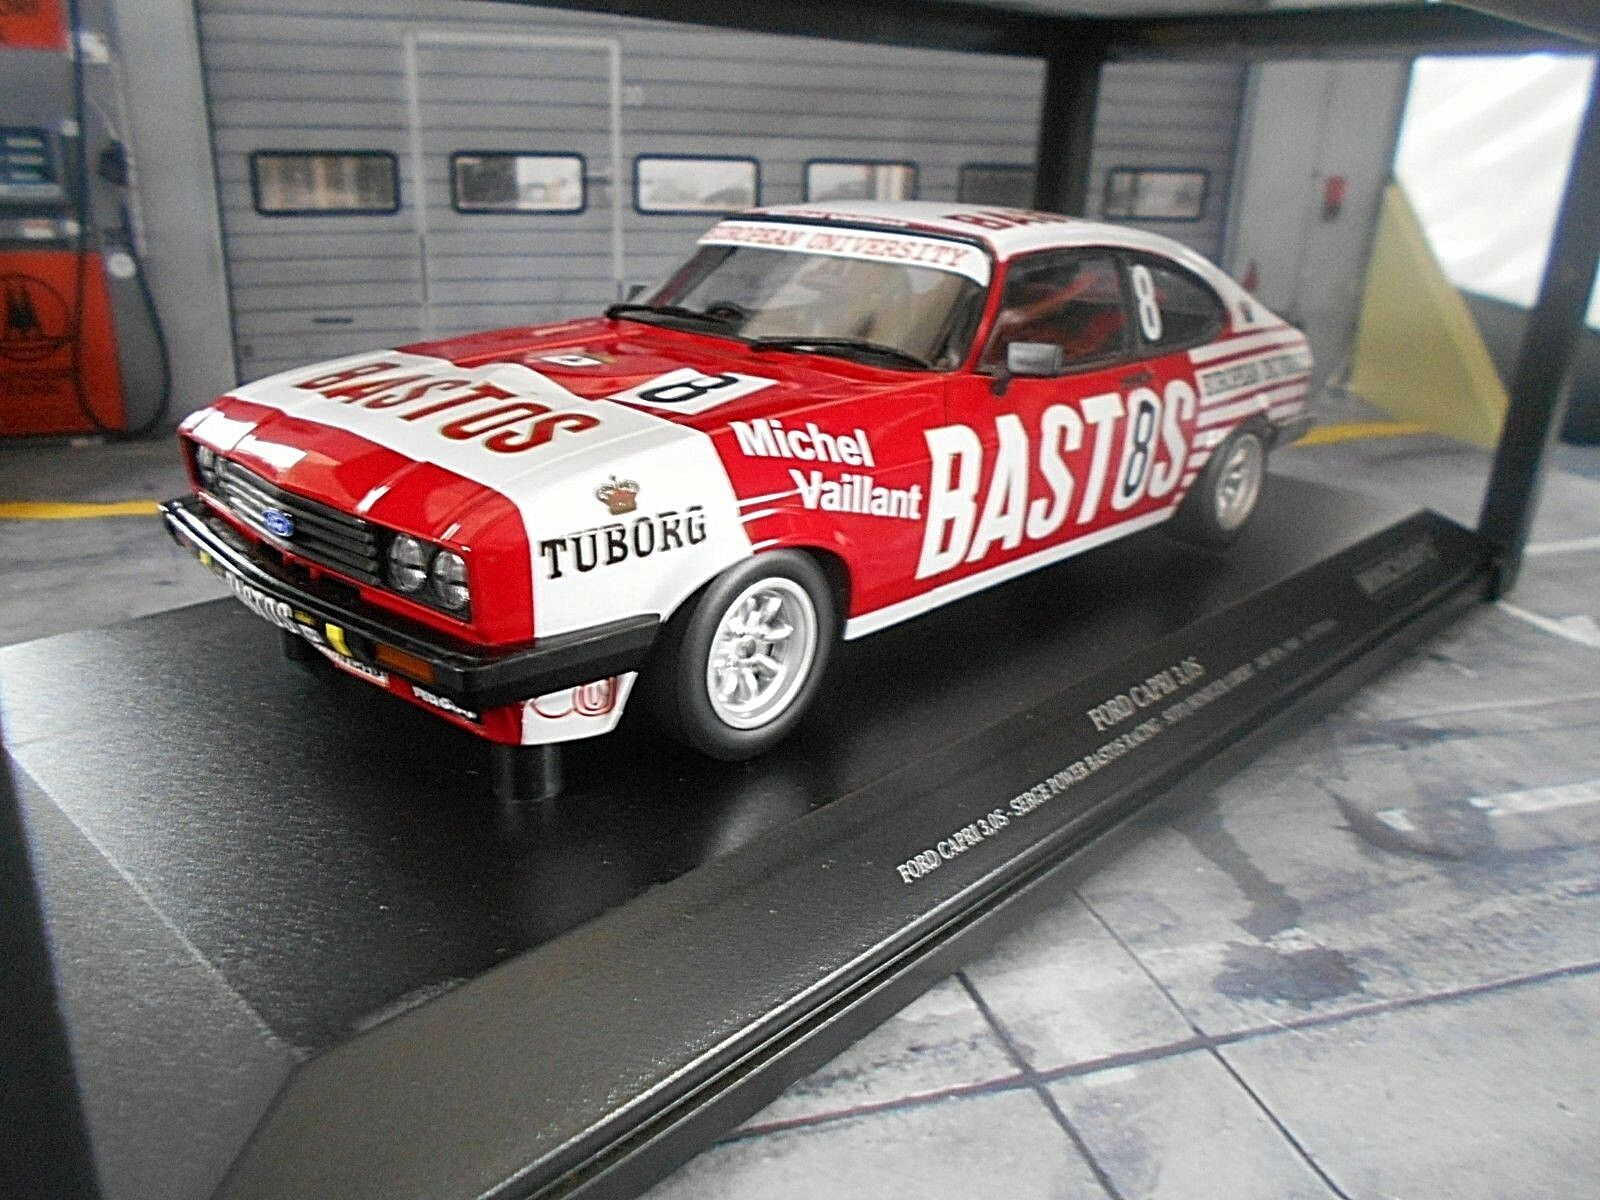 Ford Capri 3 Racing 24 H SPA 1980 #8 #8 #8 Bastos pour Libert Serge Power MINICHAMPS 1:18 | Insolite